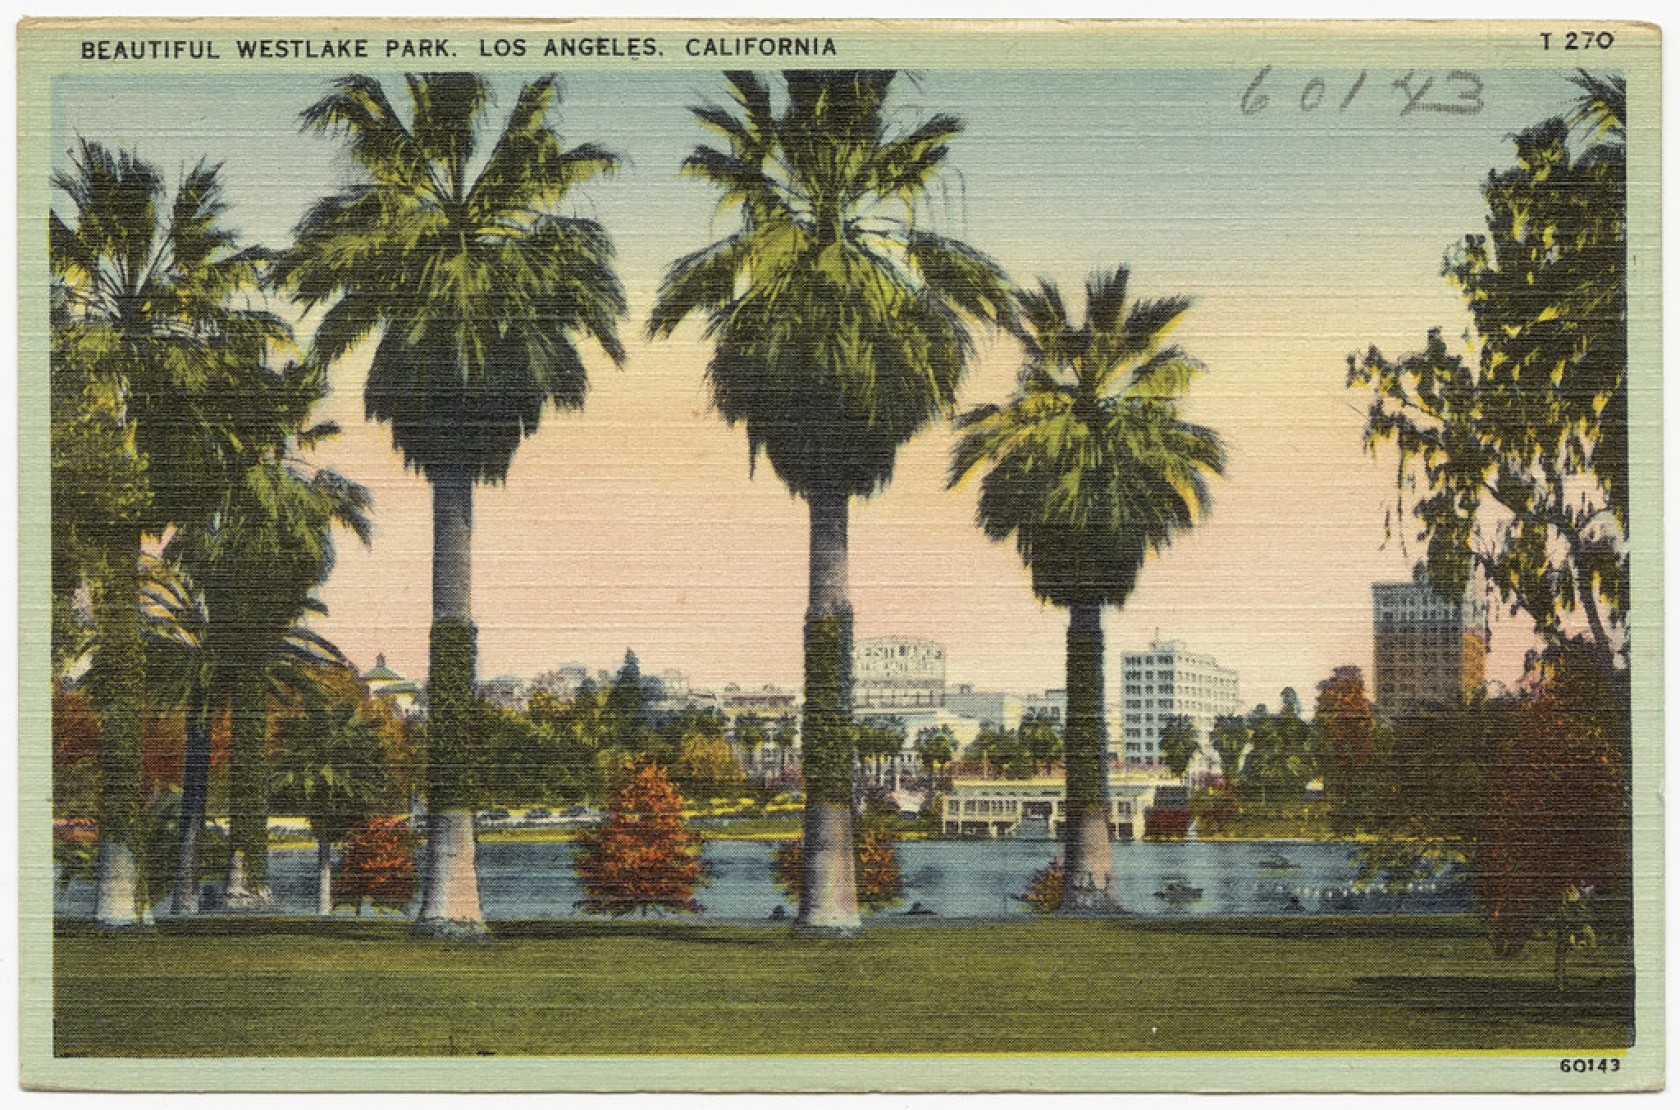 """Beautiful Westlake Park, Los Angeles, California"" by Boston Public Library"